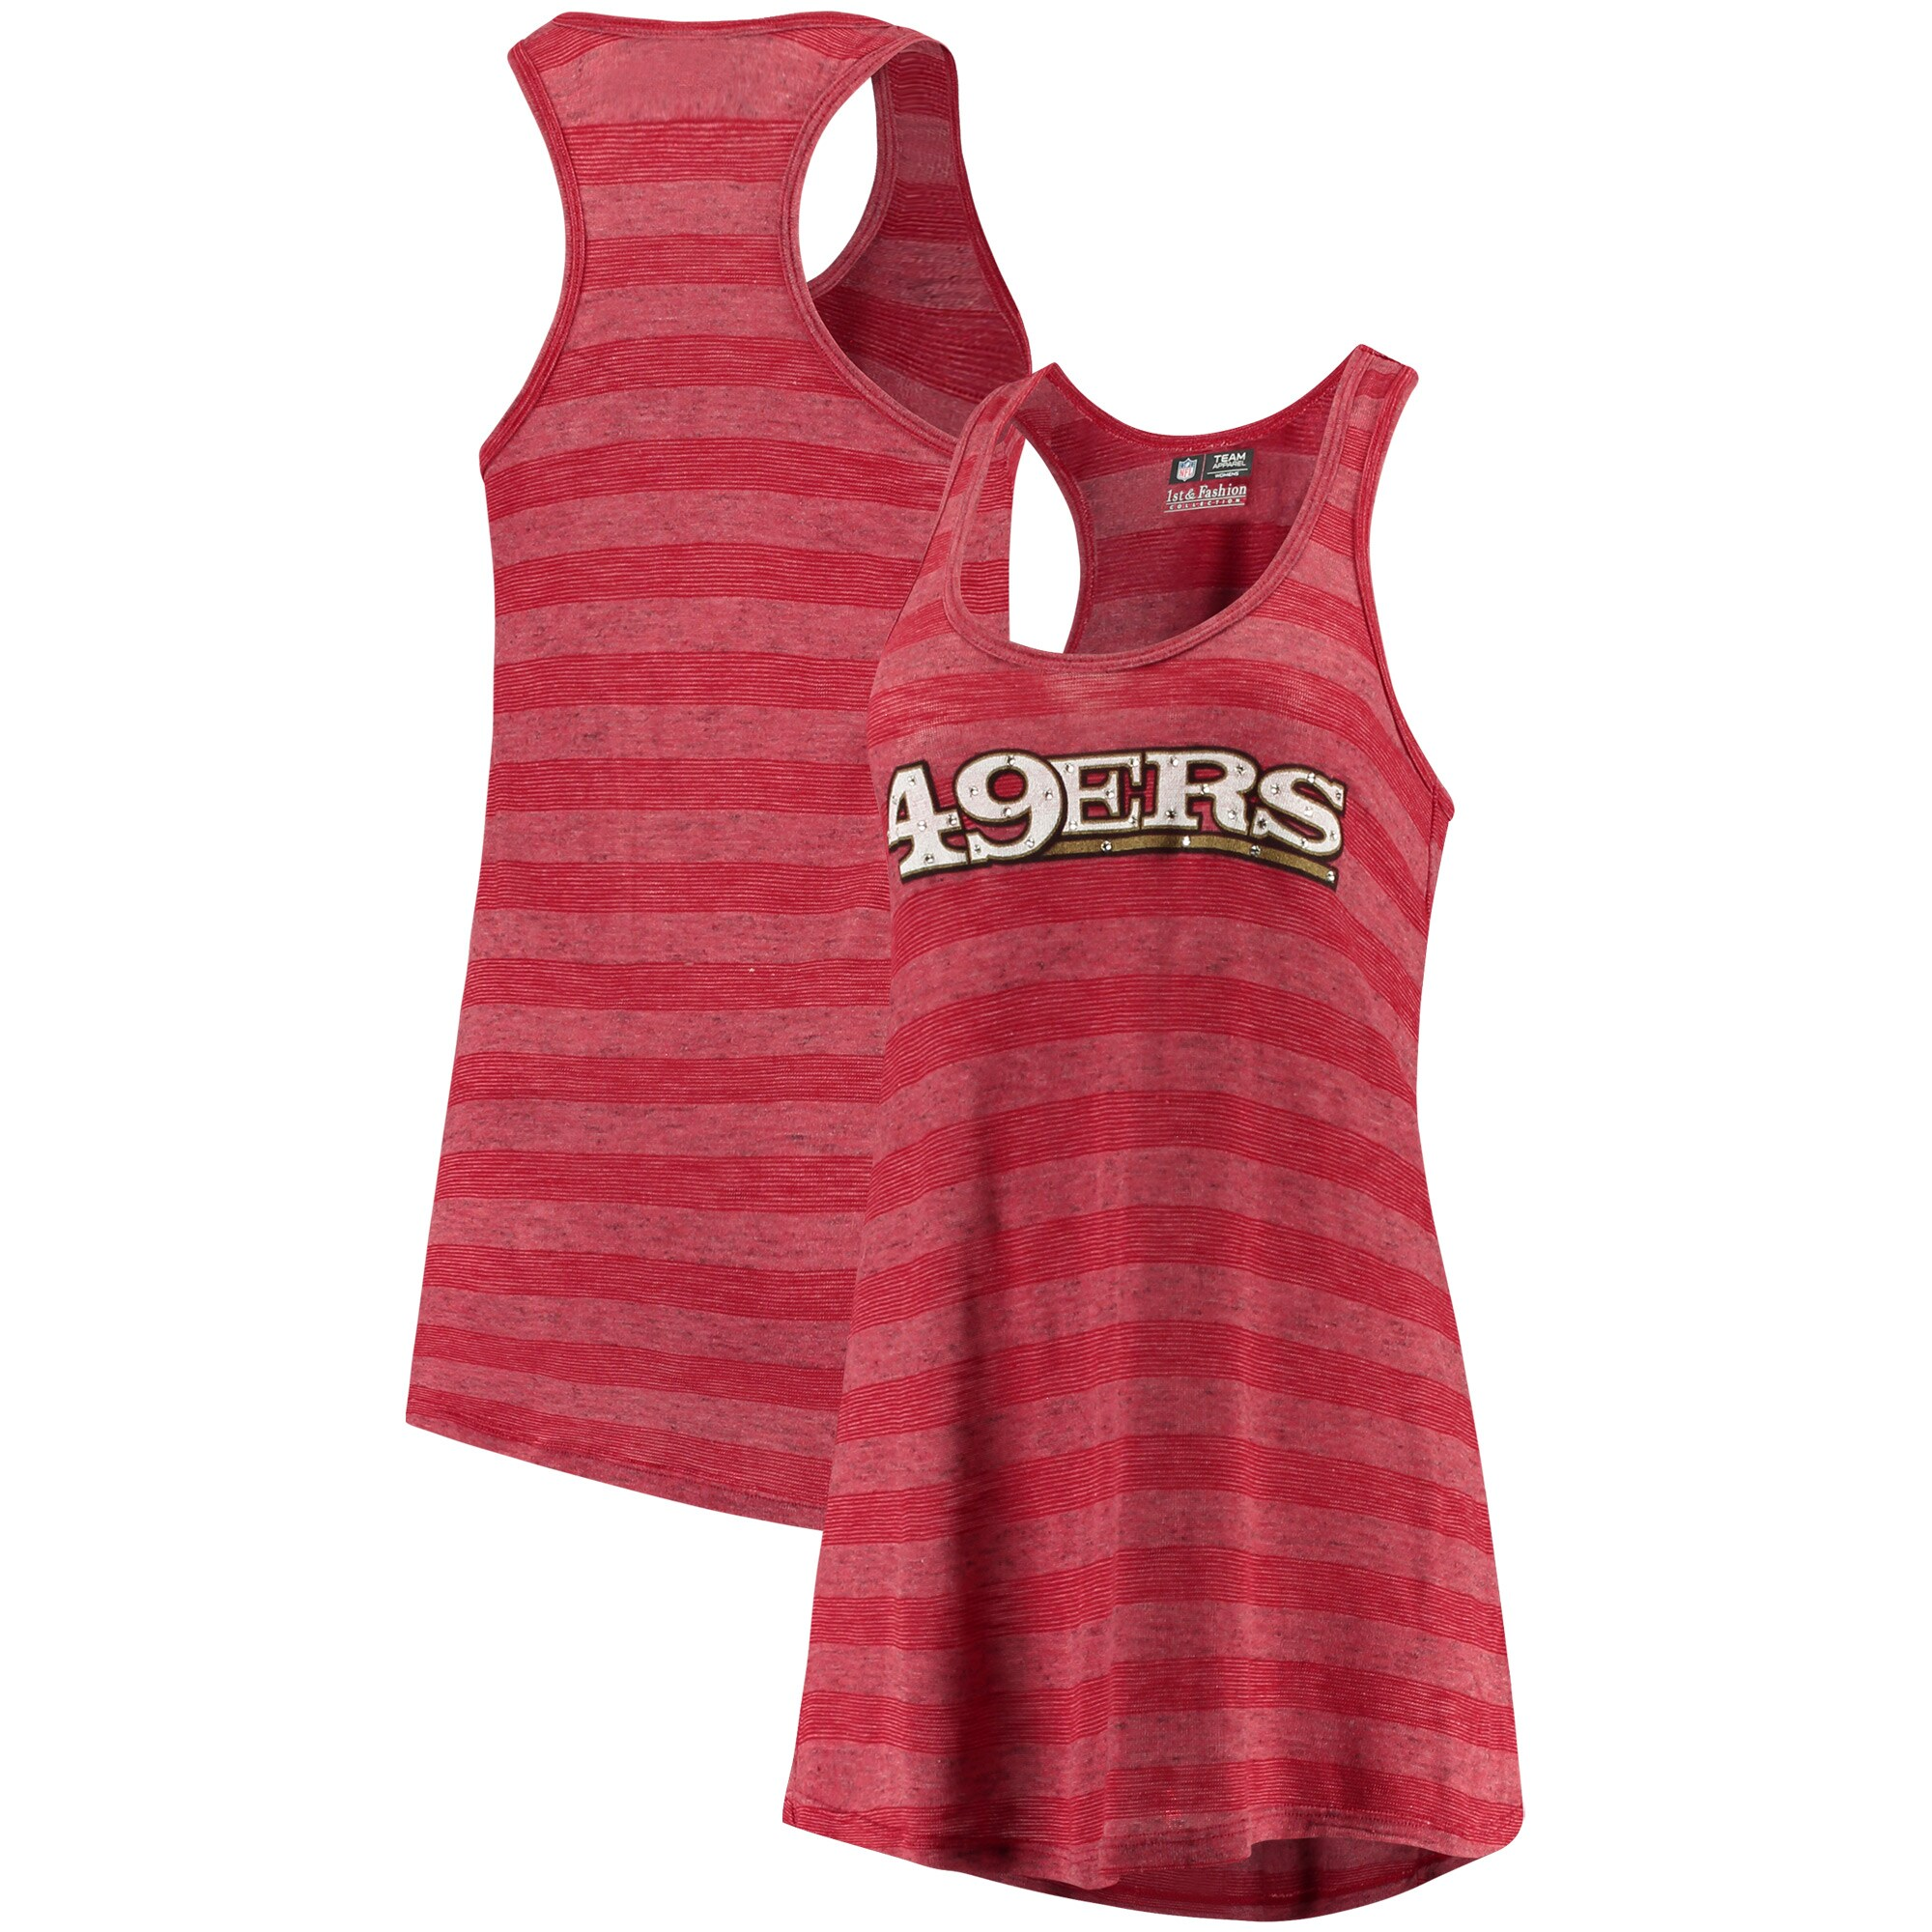 San Francisco 49ers Women's Bling Racerback Slub Knit Tri-Blend Tank Top - Scarlet